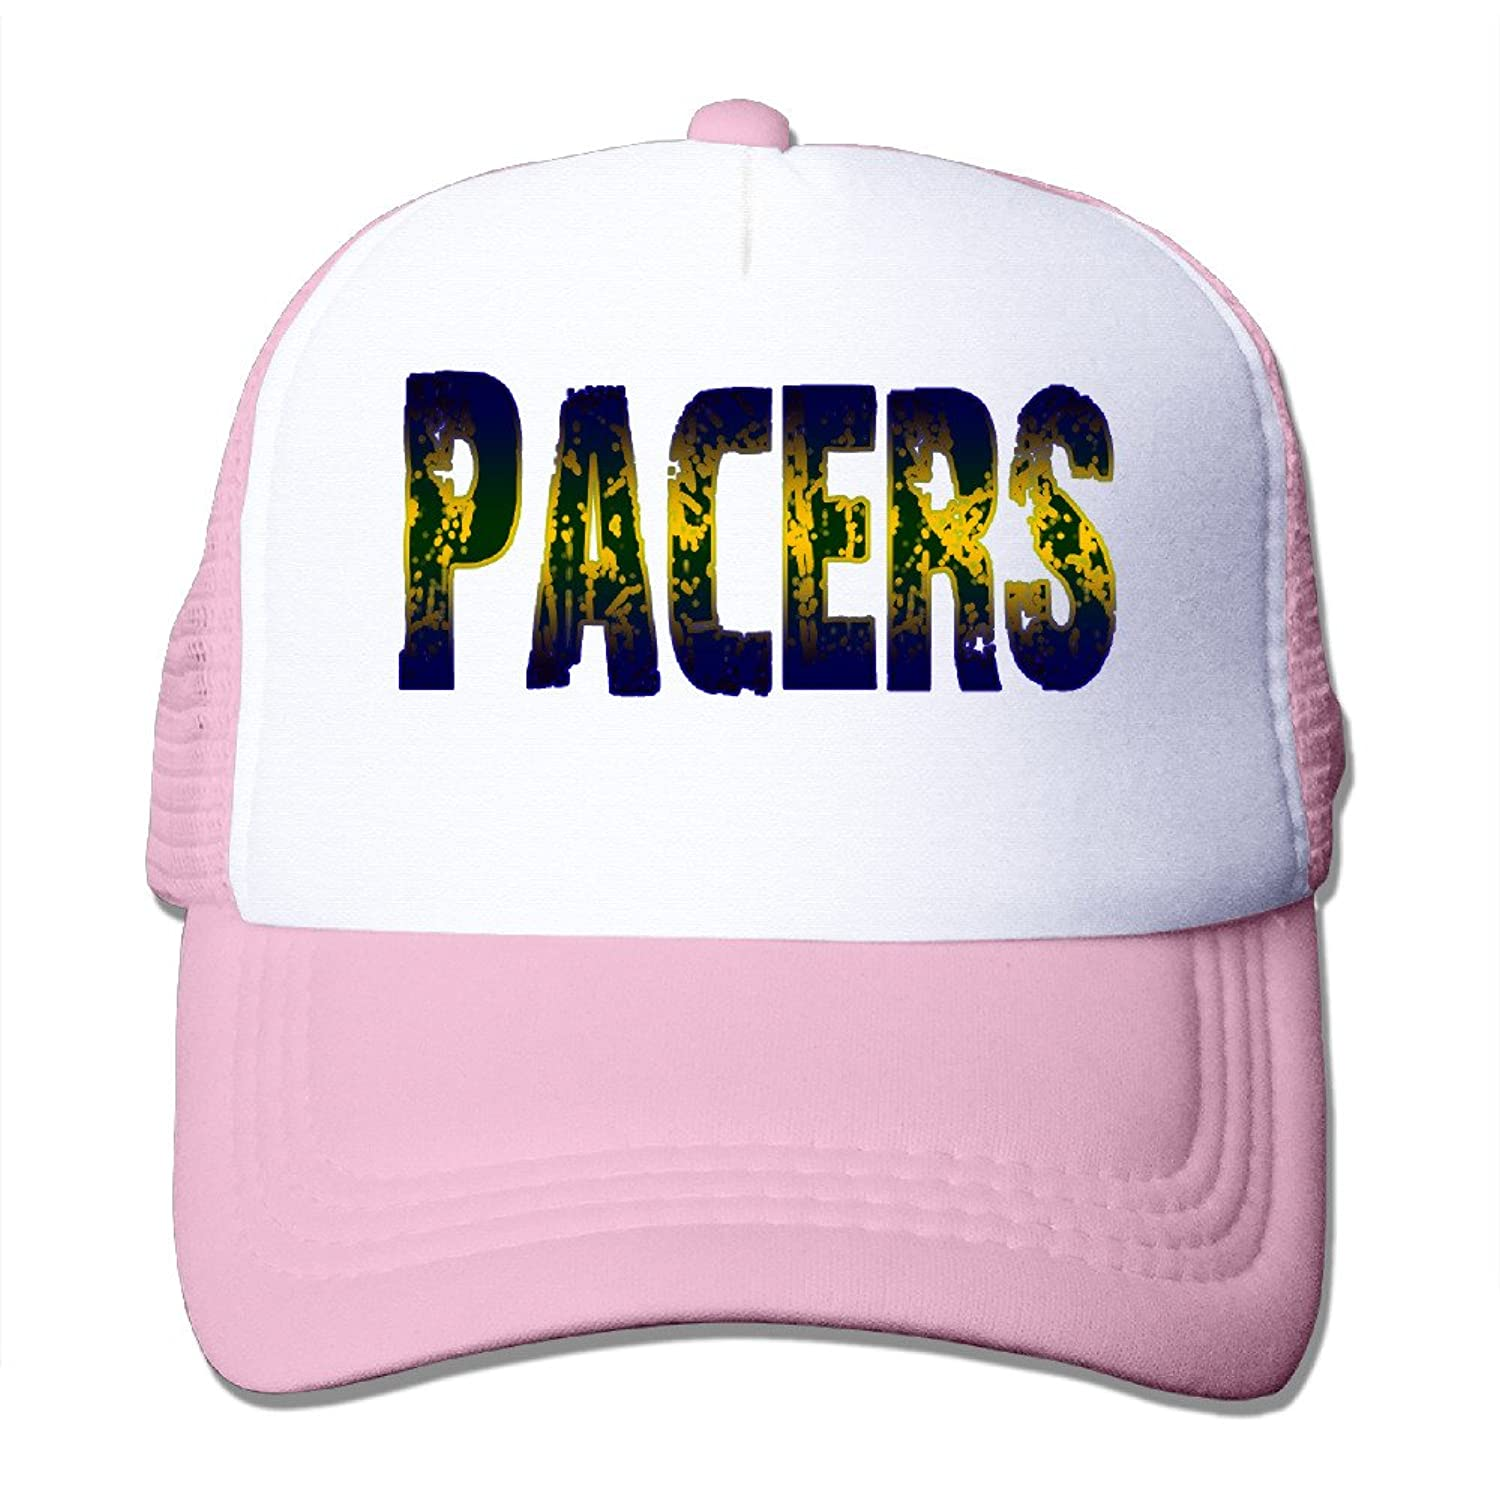 Cool Indiana Pacers Adult Nylon Adjustable Mesh Hat Mesh Caps Black One Size Fits Most